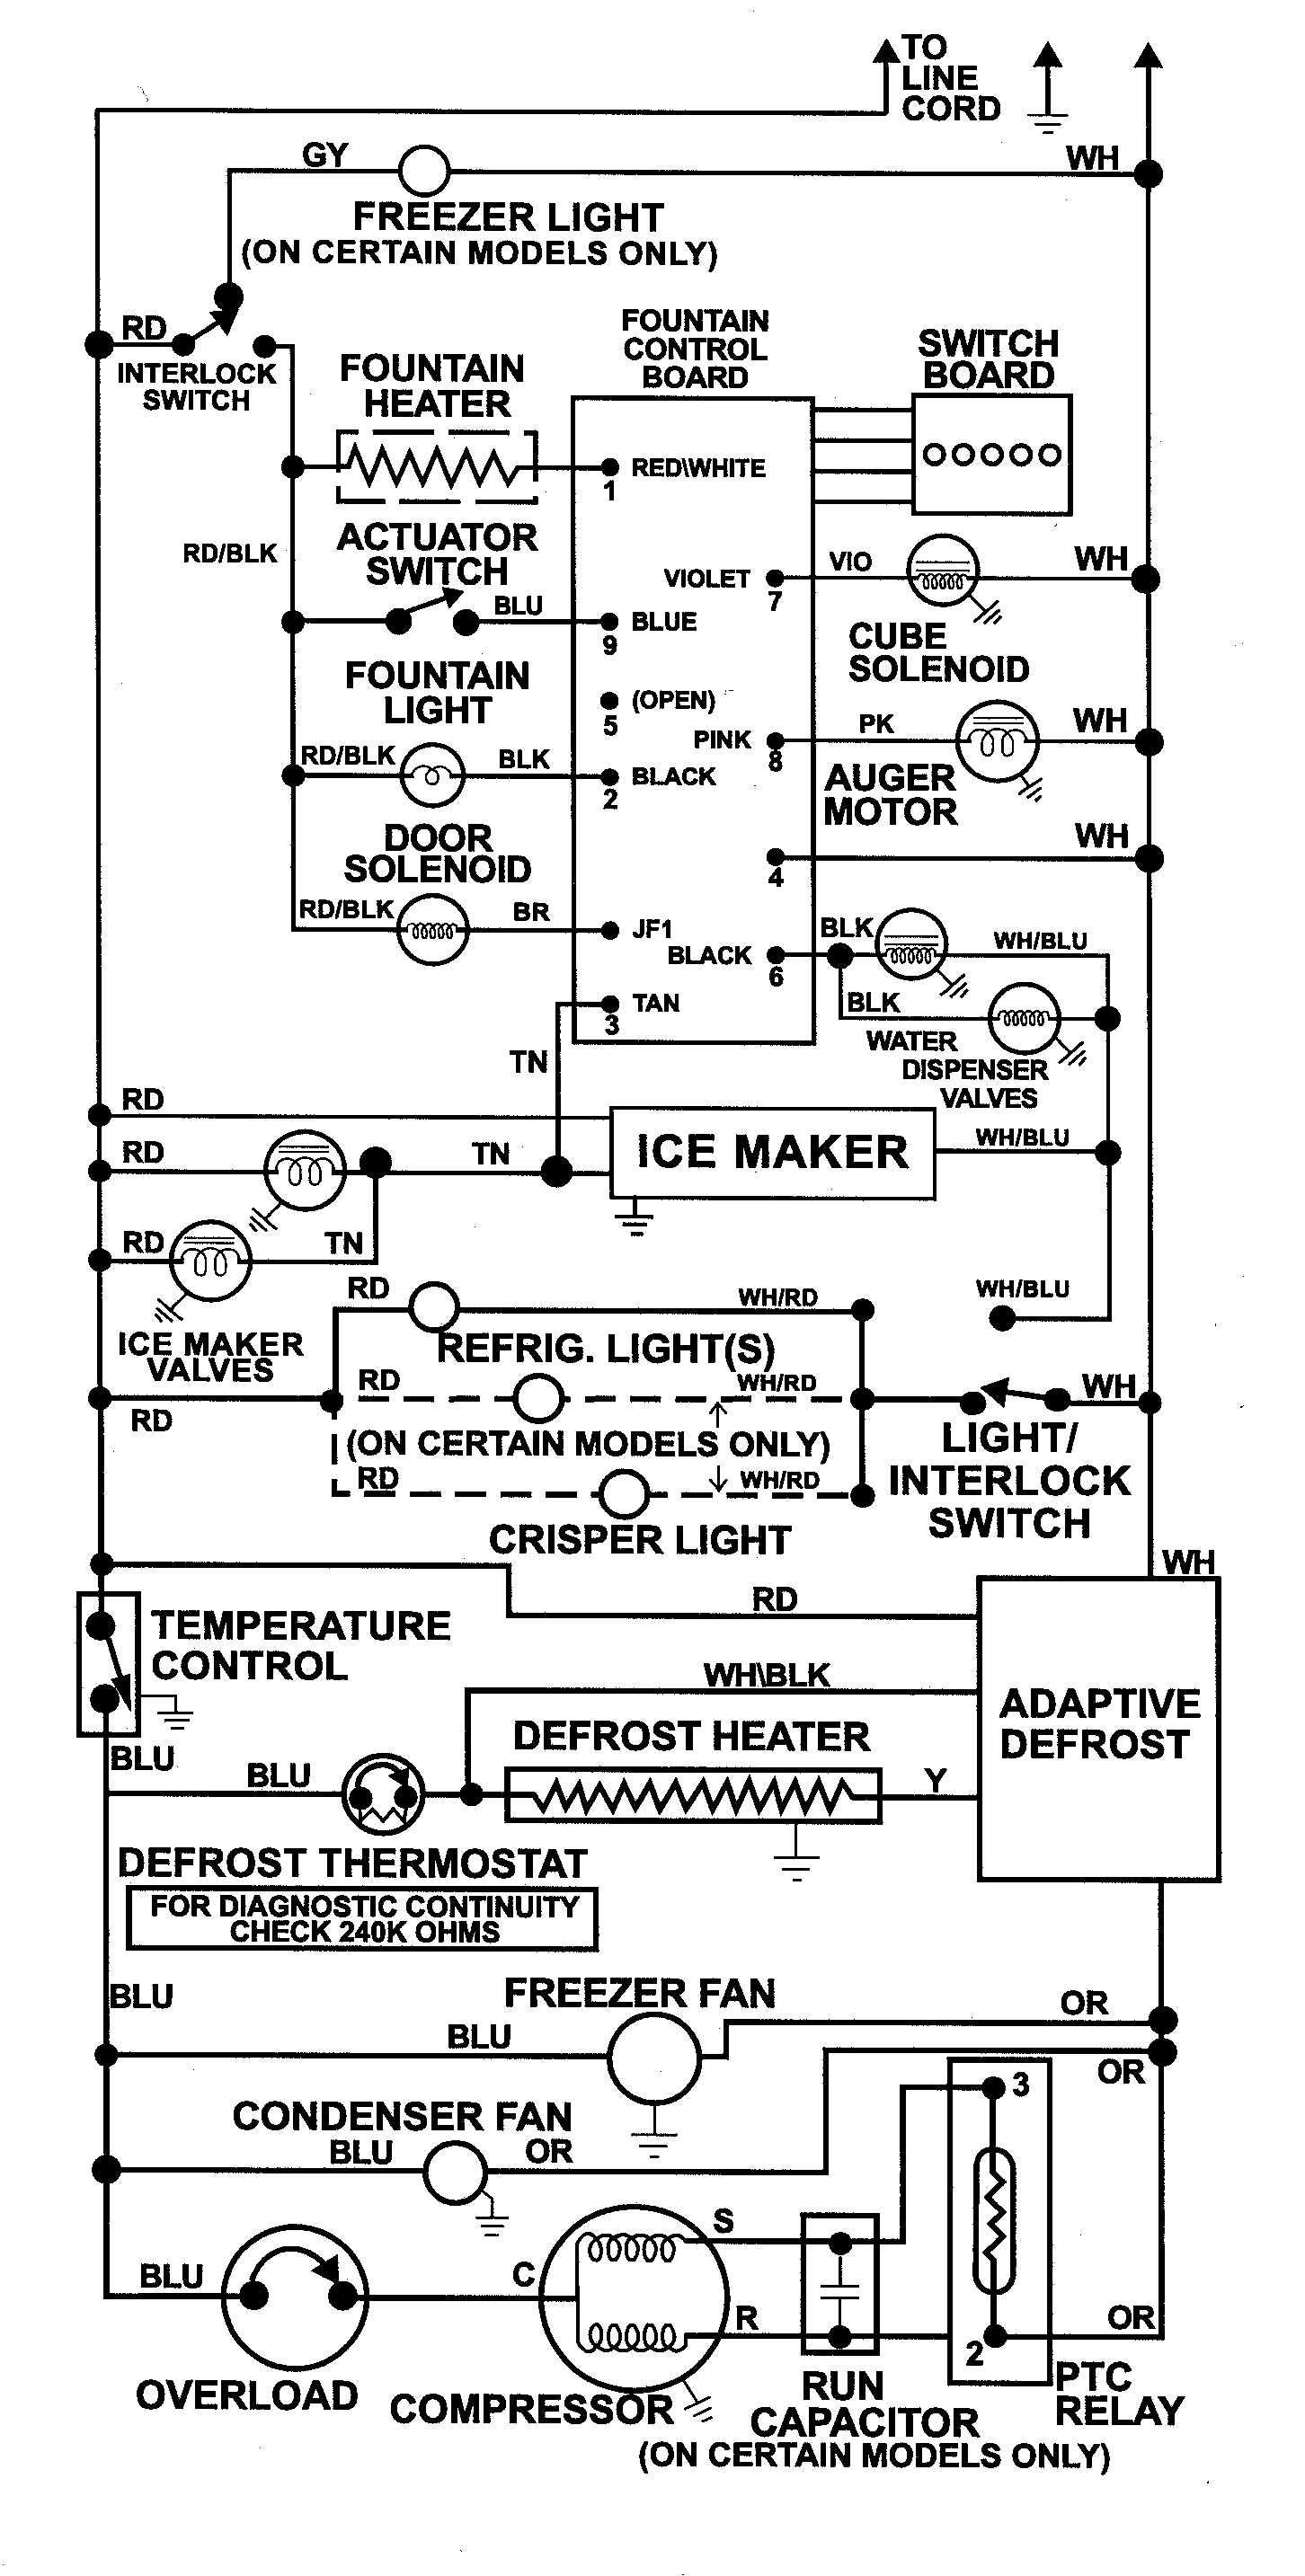 kitchenaid refrigerator wiring diagram, Wiring diagram